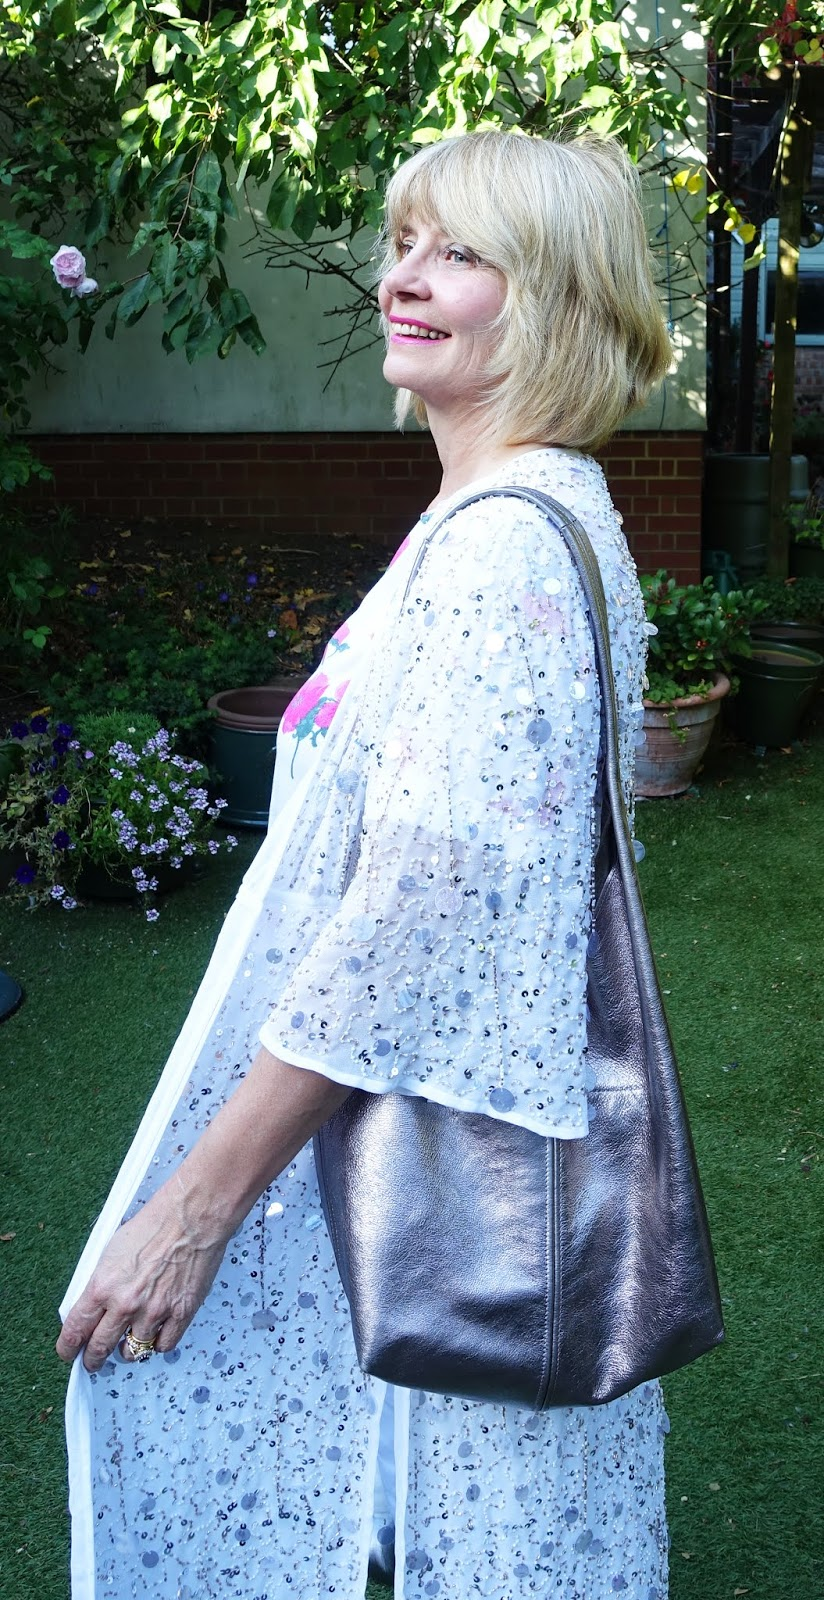 Style blogger Gail Hanlon from Is This Mutton in a white embellished coatigan from River Island, white flared jeans and a floral patterned top.